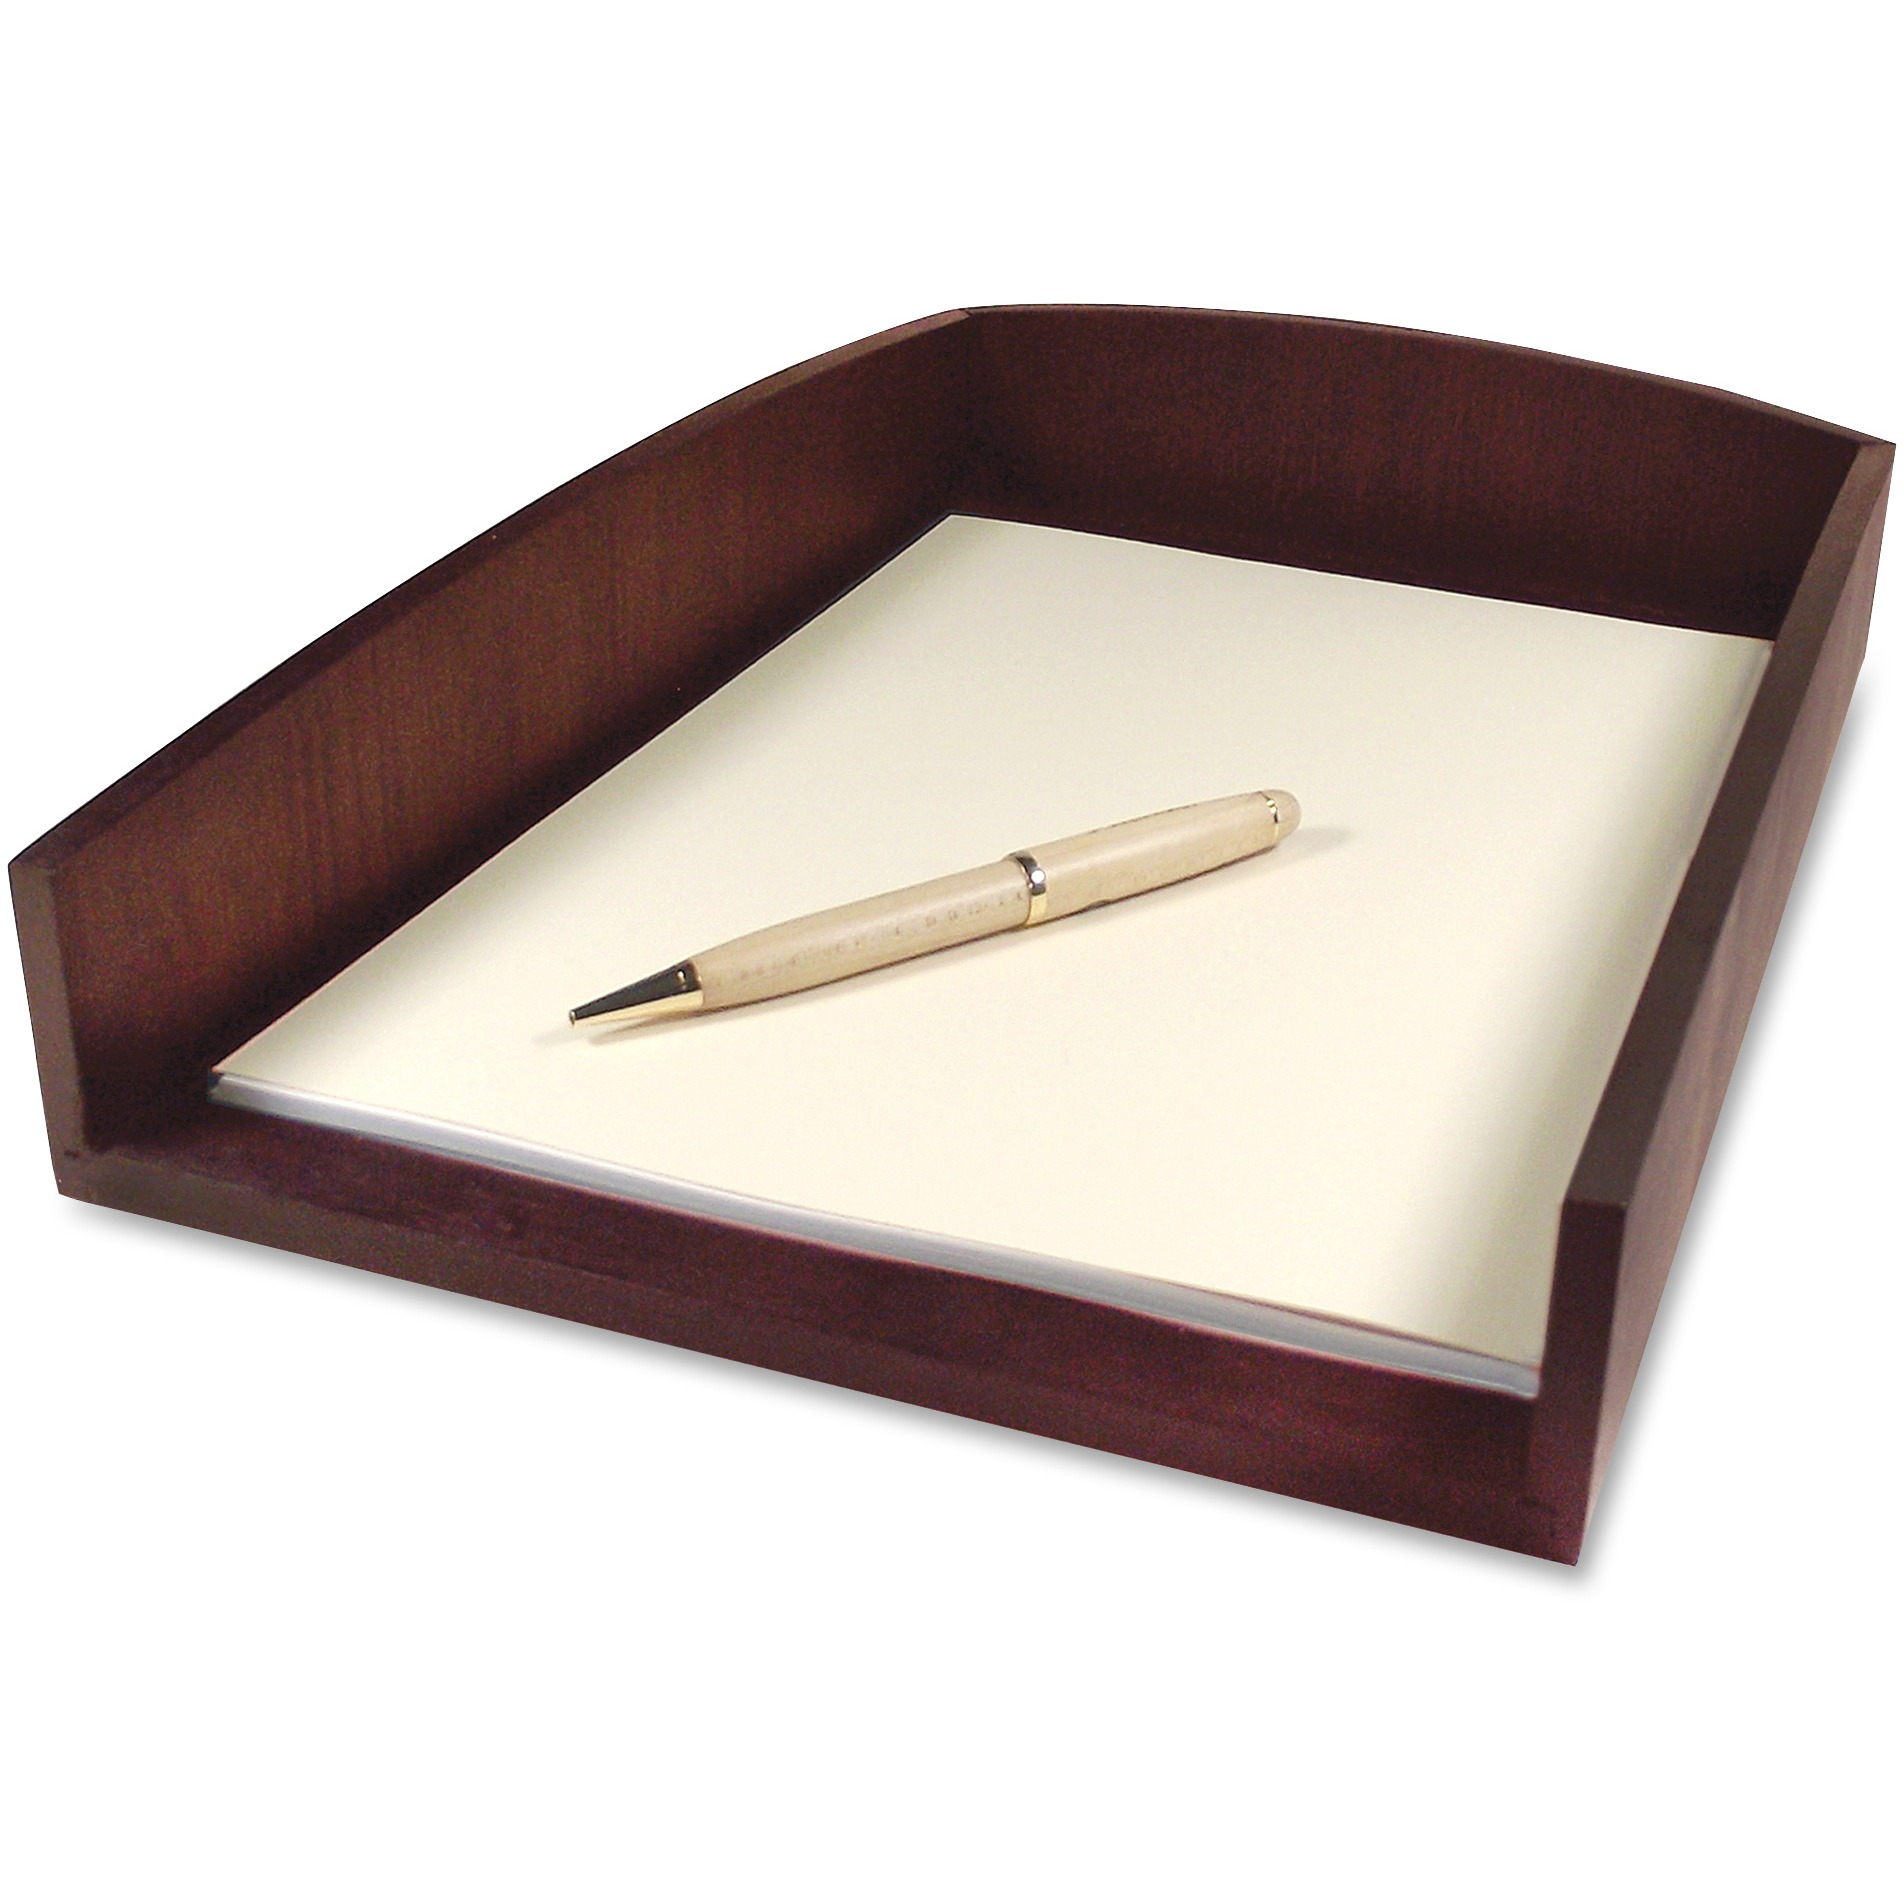 Artistic Eco-Friendly Bamboo Curves Letter Tray, Letter, Espresso Brown by Artistic Products, LLC